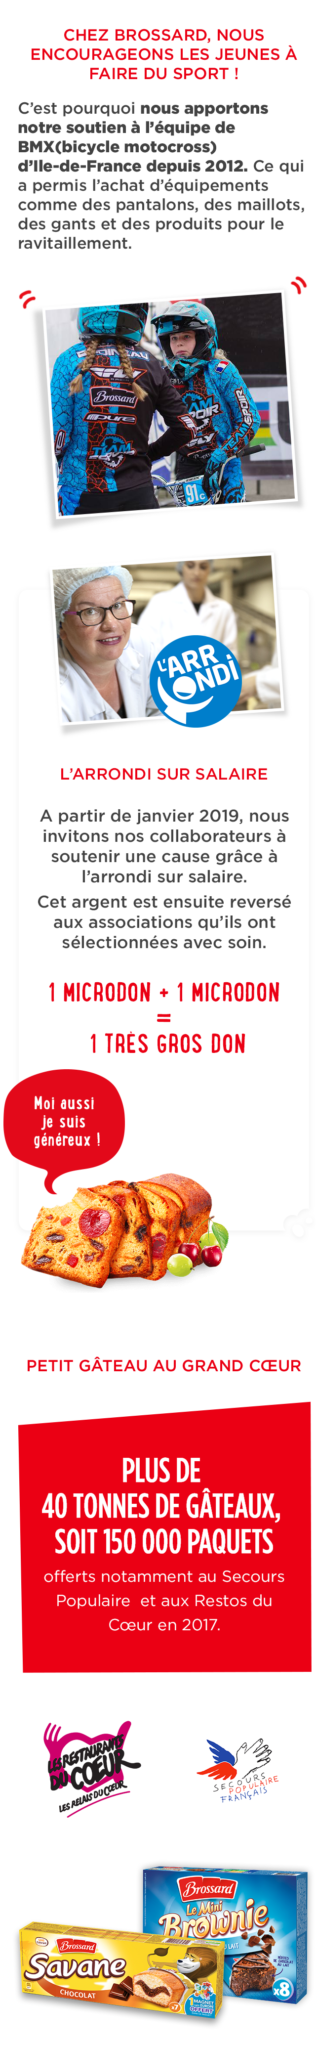 engagements-solidaires-mobile640x4143